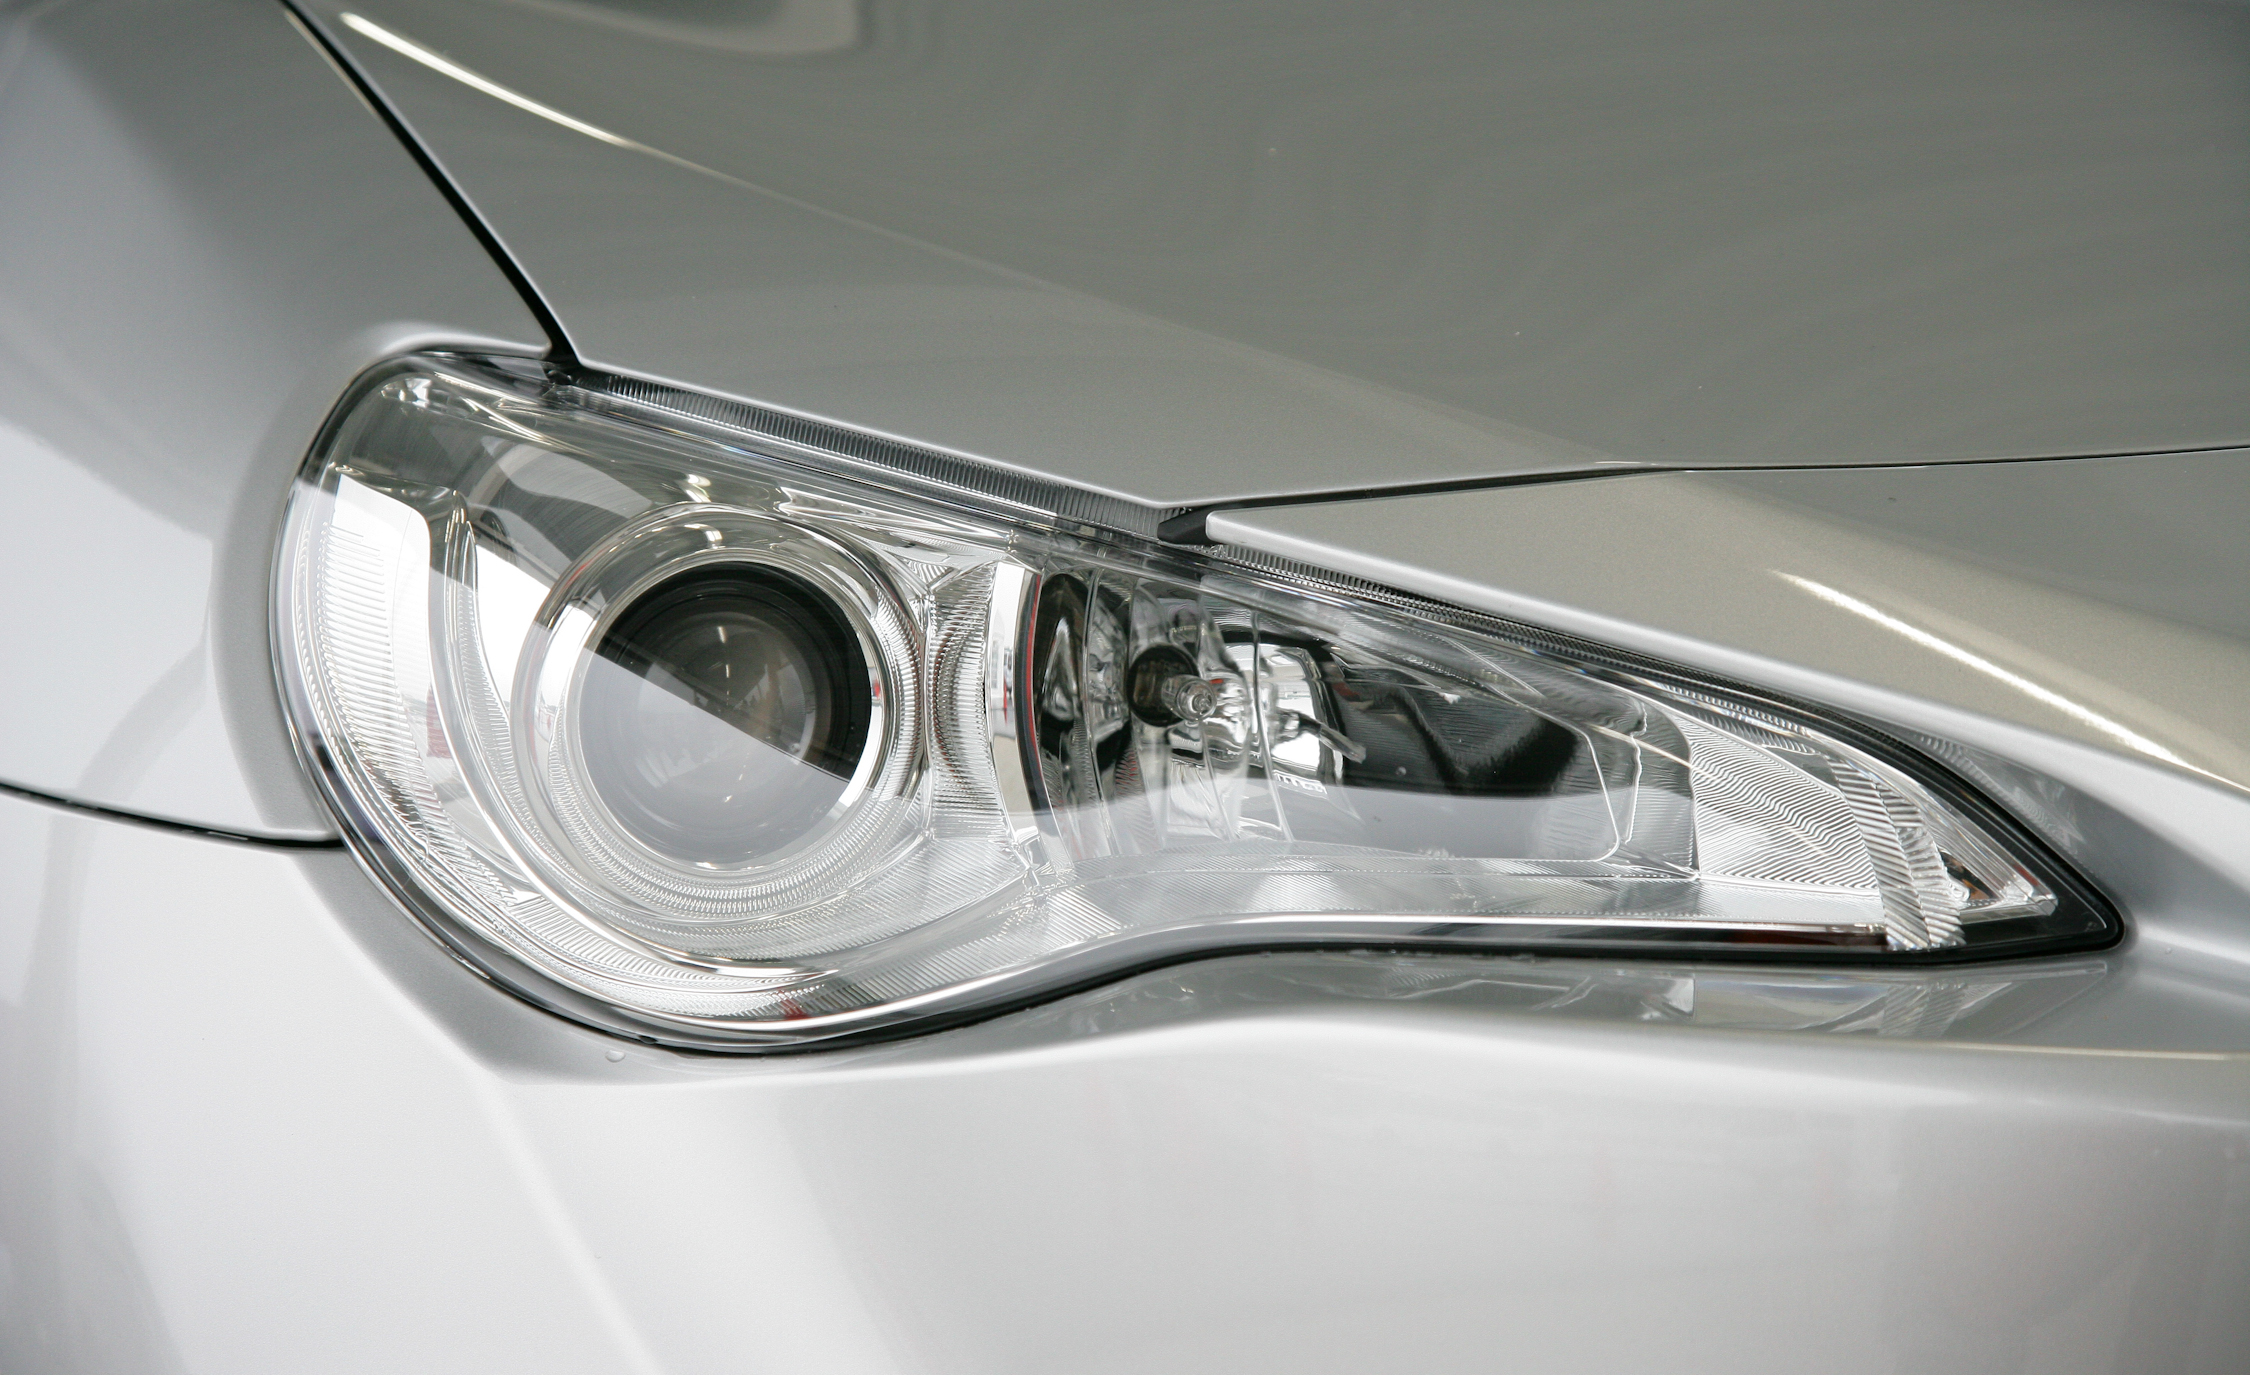 2013 Scion FR S Exterior View Headlight (Photo 12 of 47)